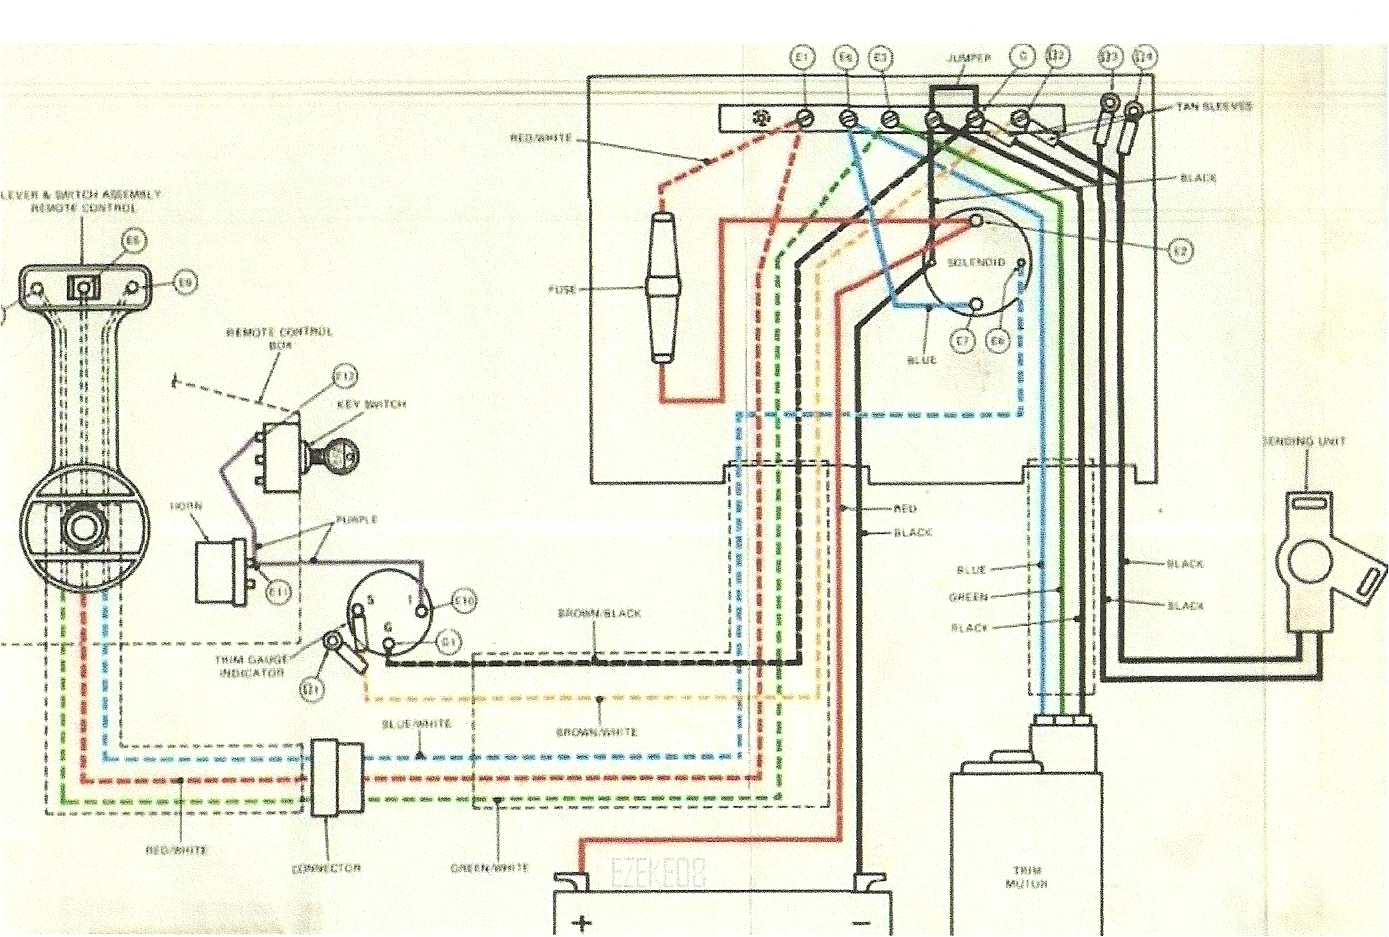 wiring diagrams for johnson 150 boat motors  all boats i need a wiring diagram for a 74 evinrude 70 hp boat motor